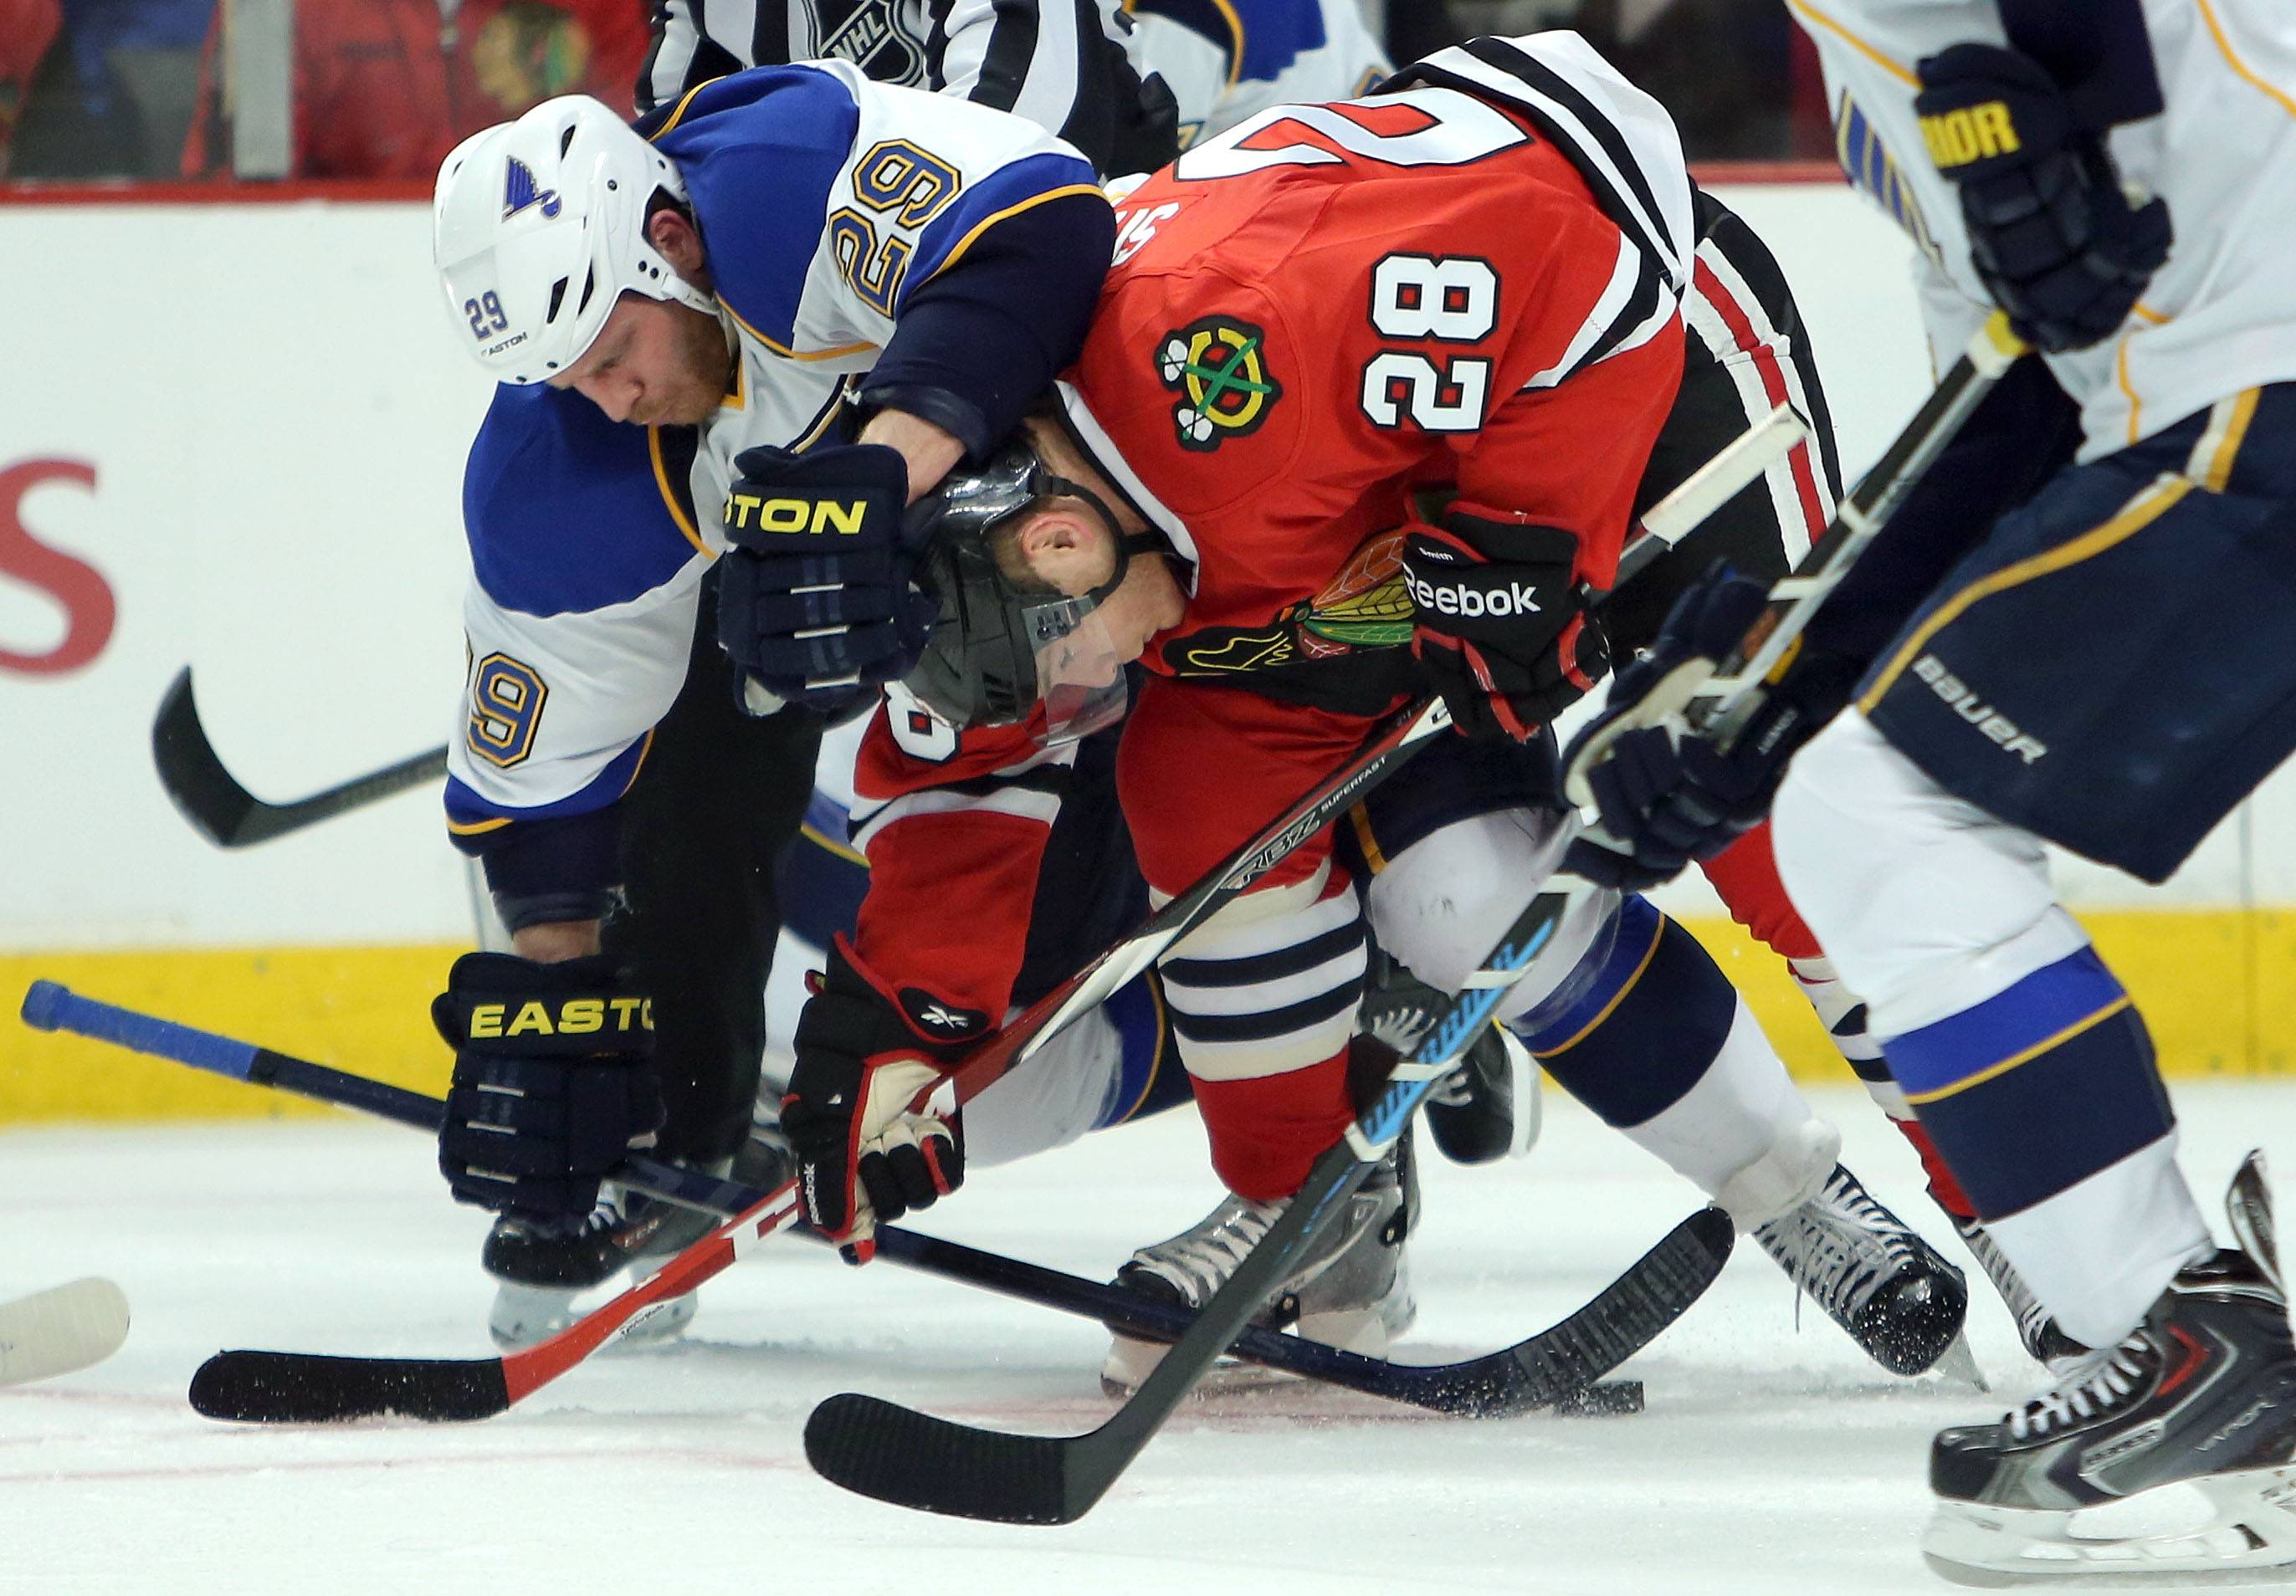 The Blues' Steve Ott and Ben Smith battle after a faceoff during the Hawks' 2-0 win in Game 3 at the United Center on Monday night.